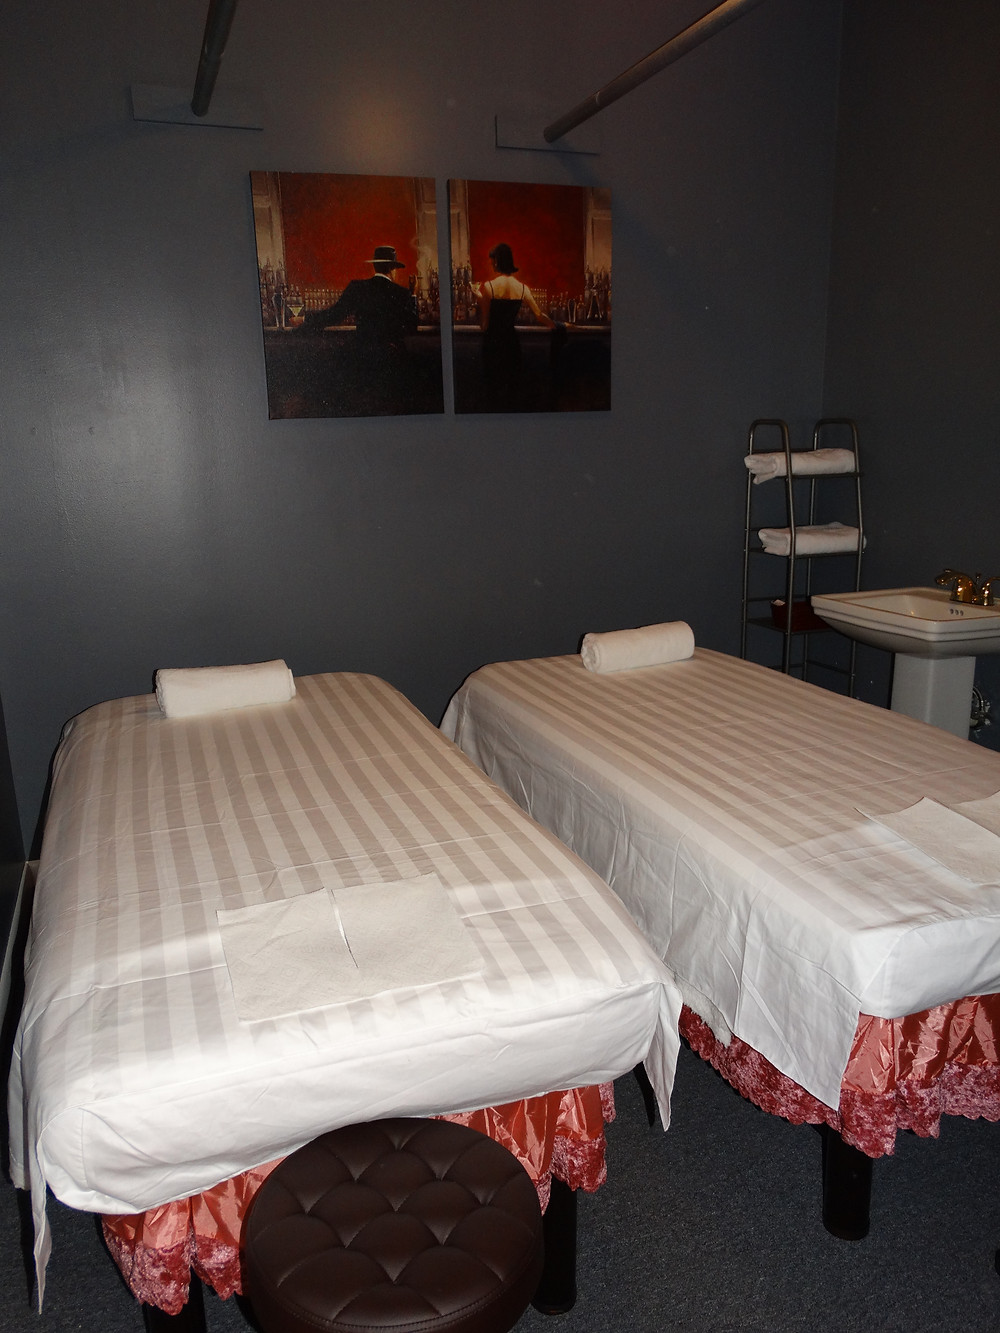 Your Massage Spa Couple Massage Room!